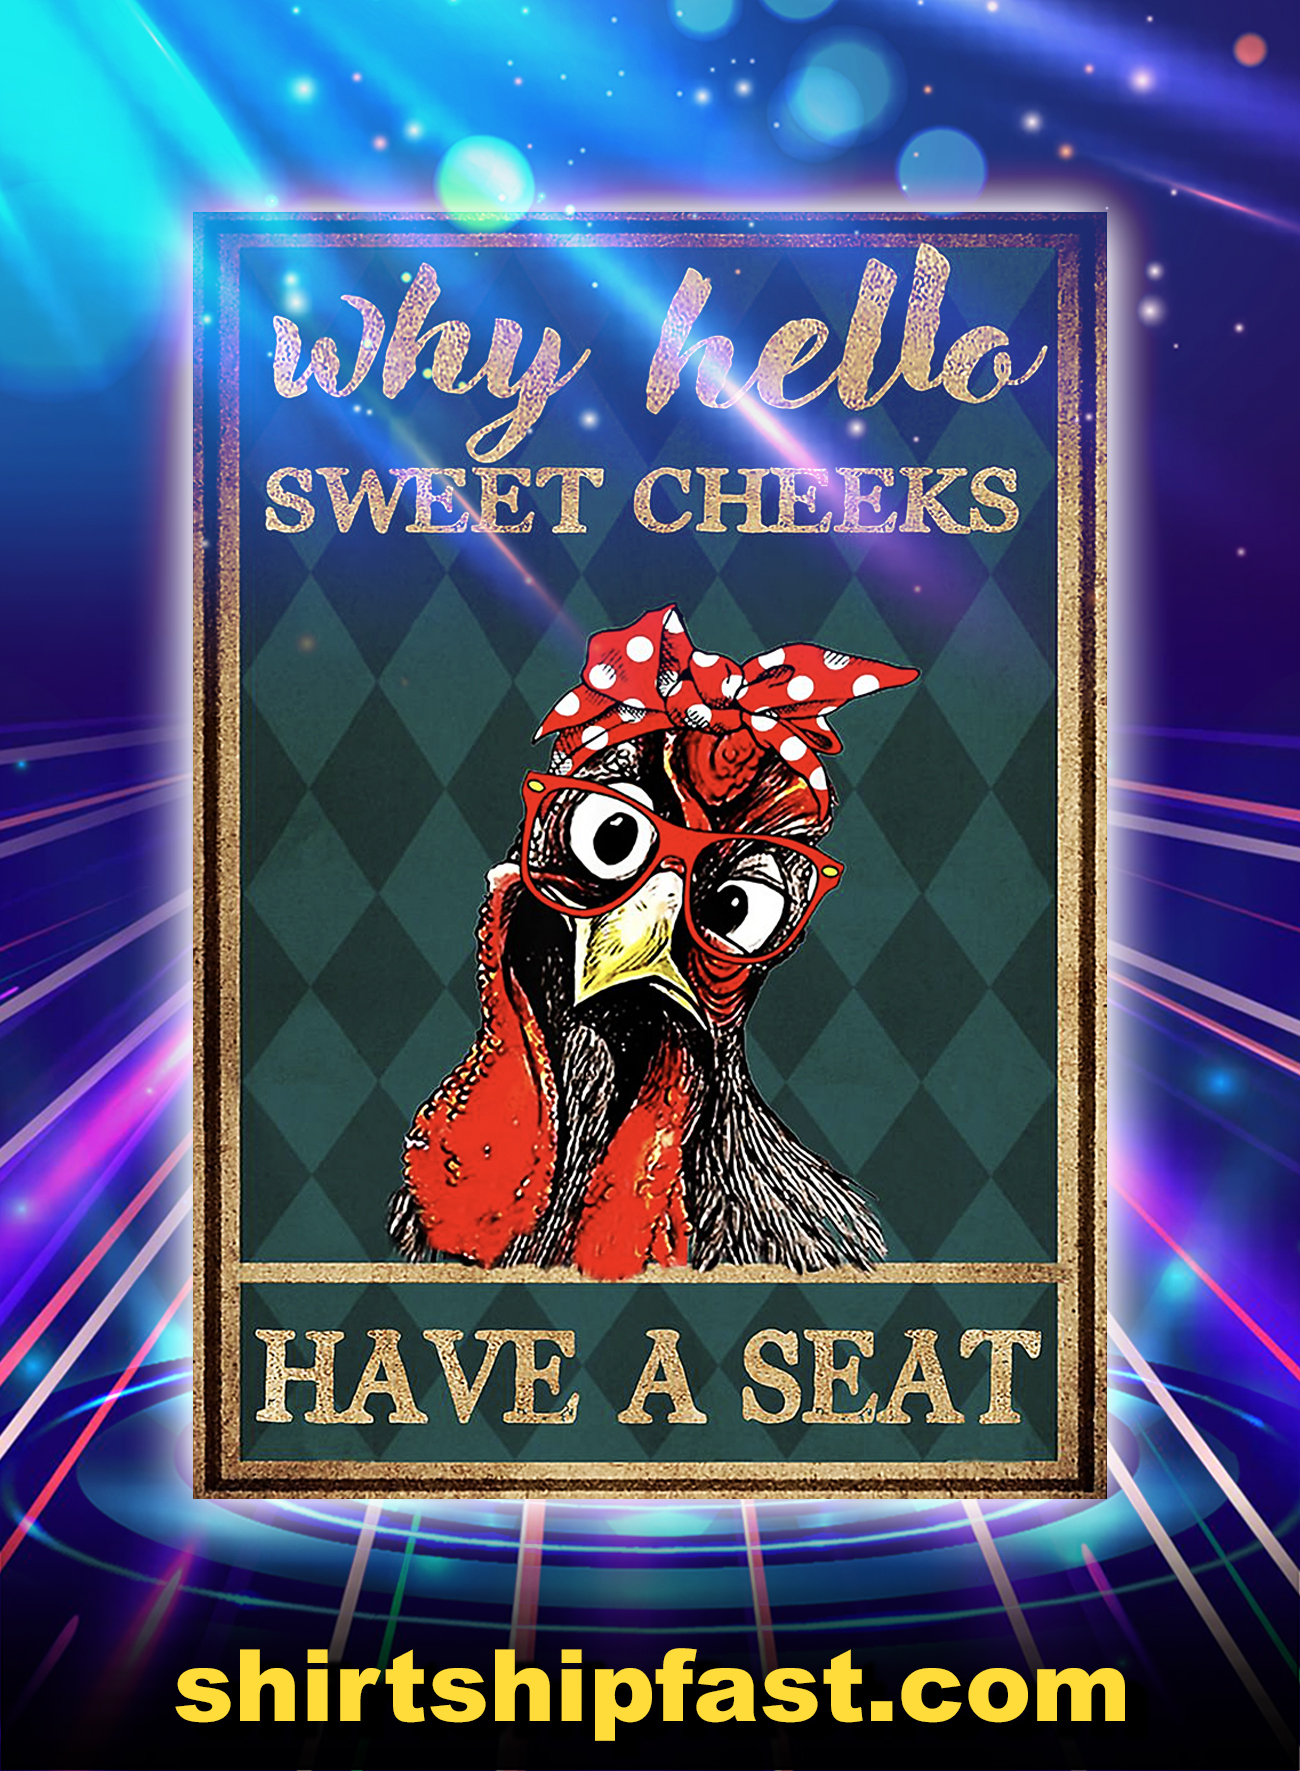 Chicken why hello sweet cheeks have a seat poster - A4